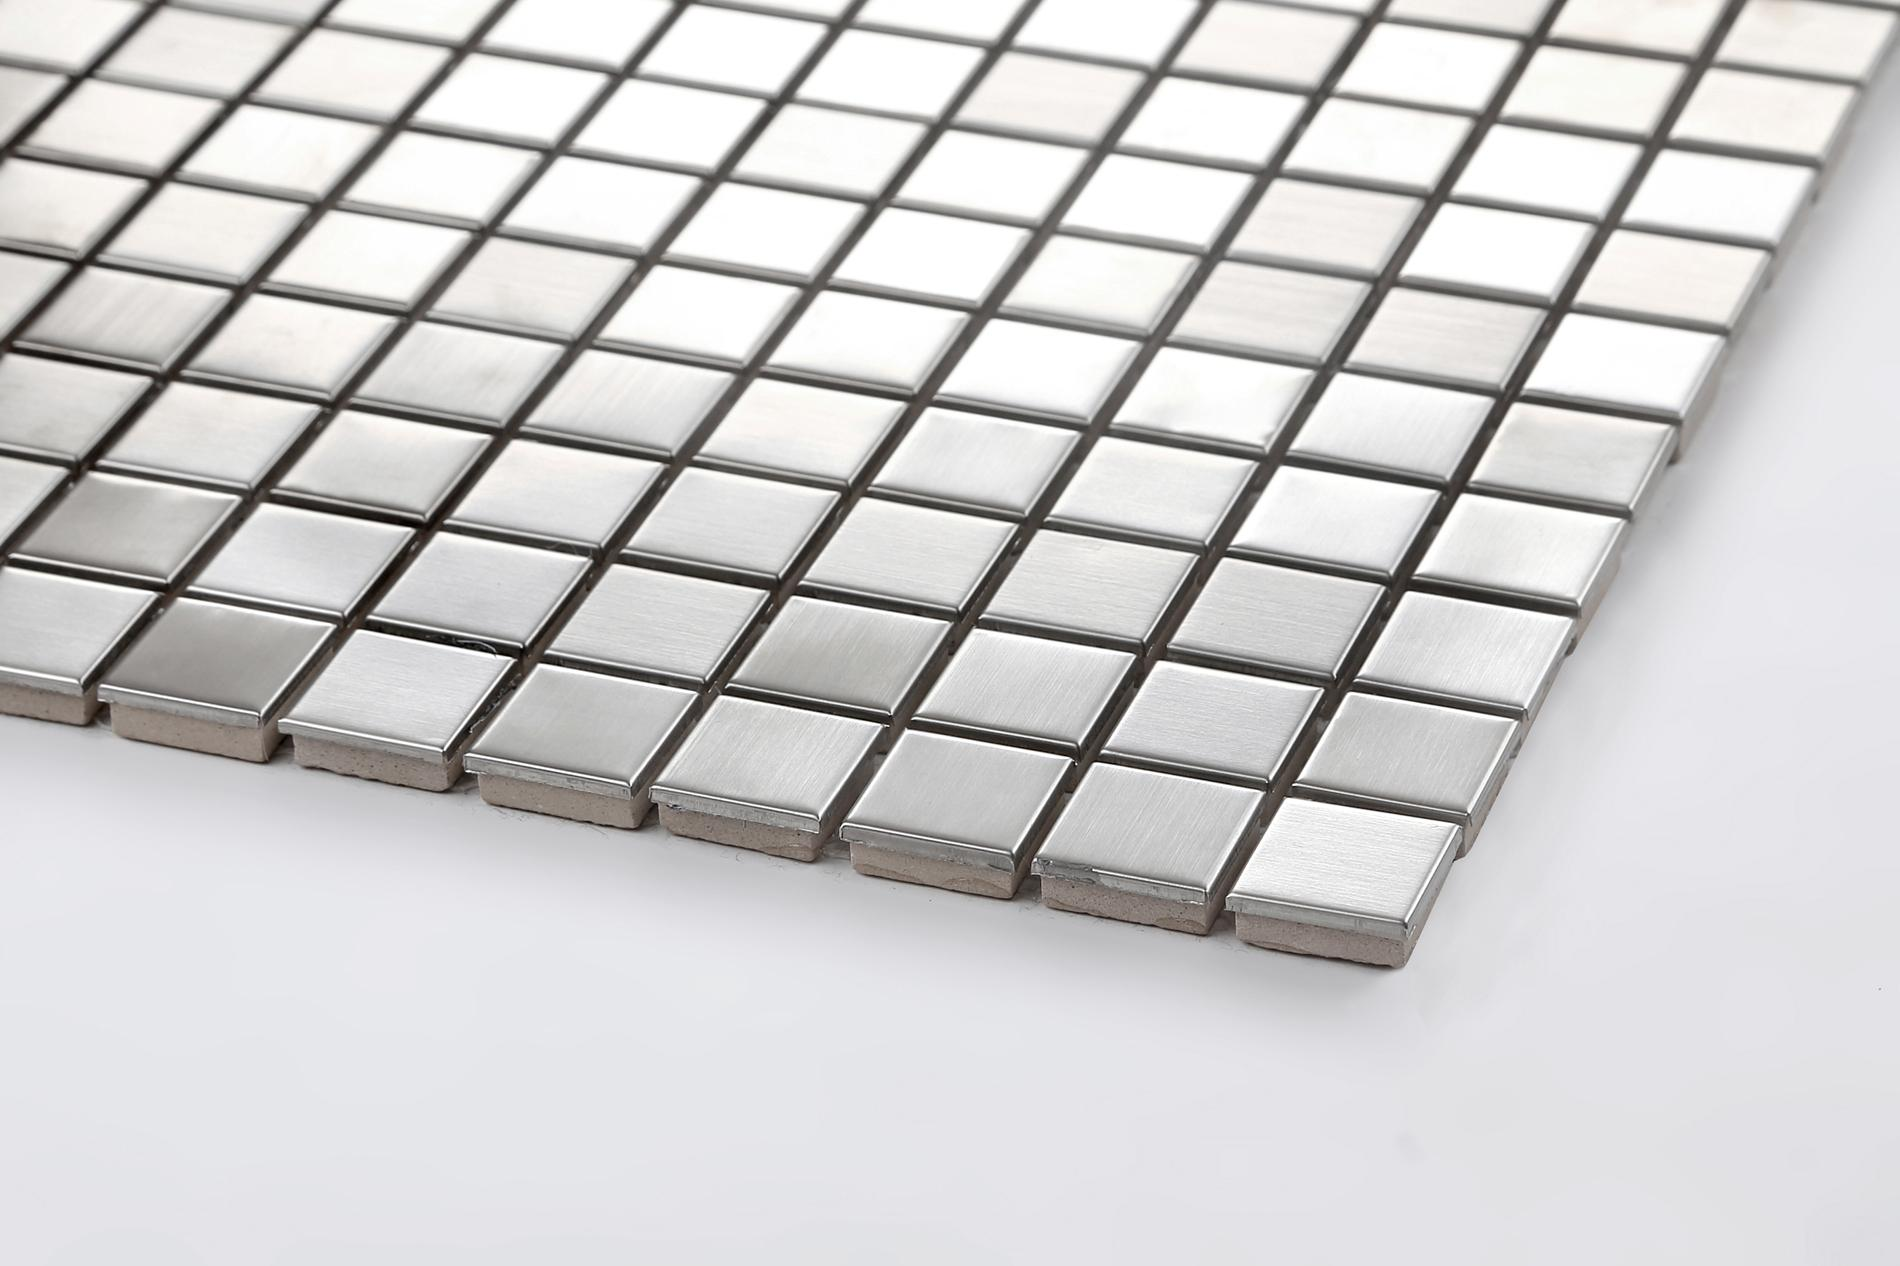 Stainless steel mosaic tiles sheets bathroom kitchen for Stainless steel sheets for kitchens